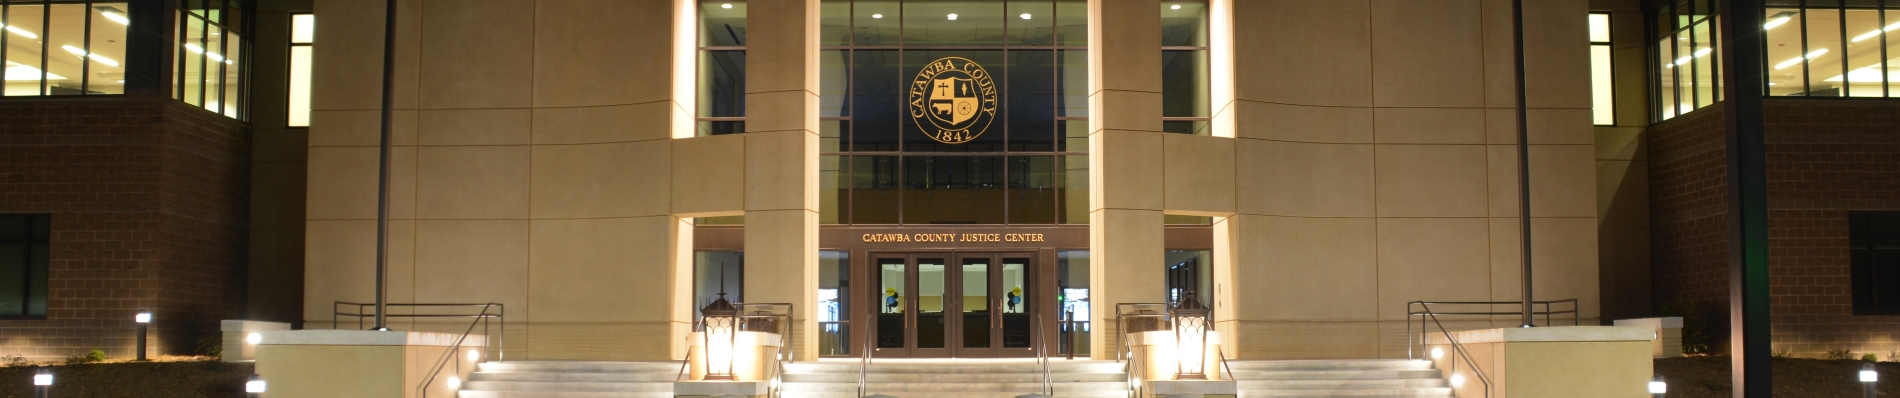 Crop of Newton Justice Center at Night